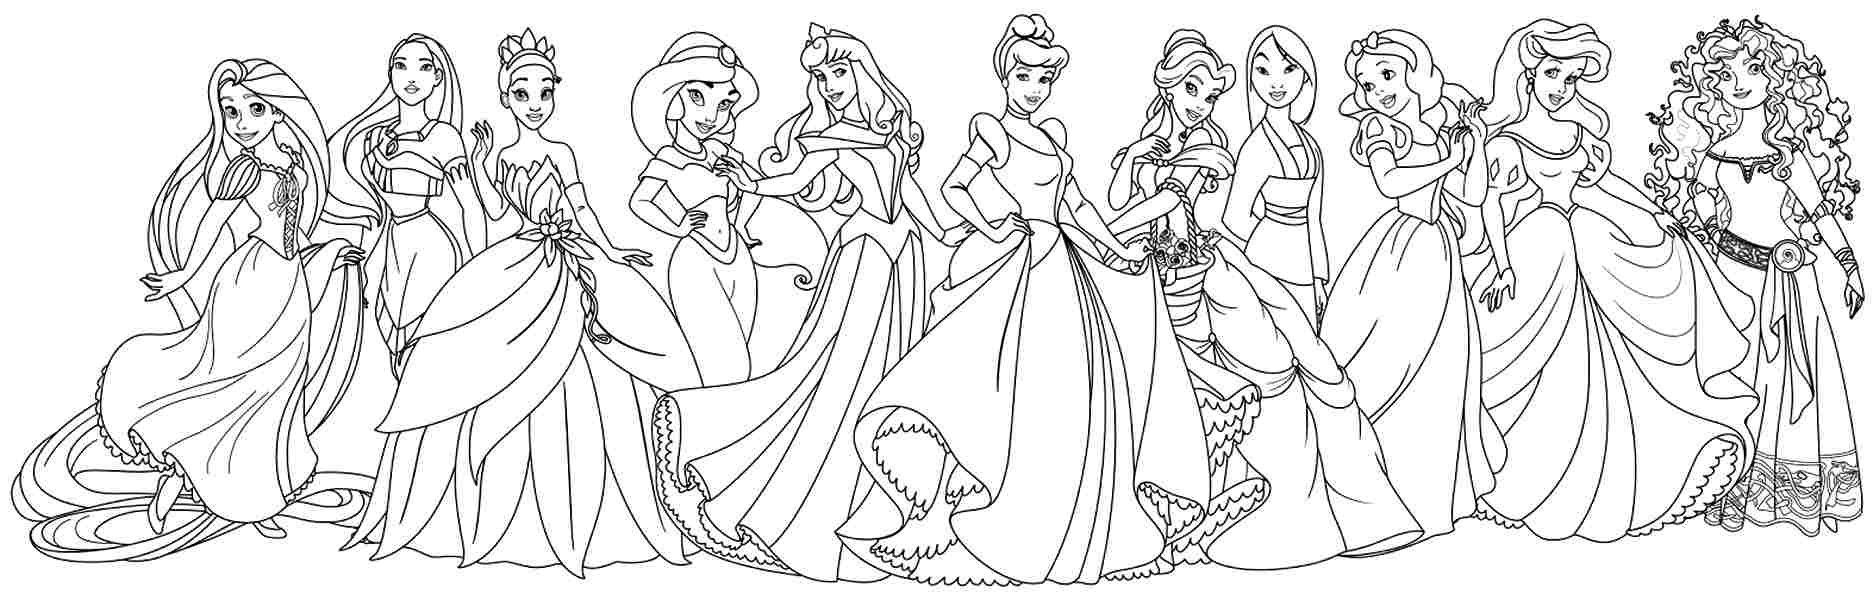 coloring pages disney princesses online - photo#27